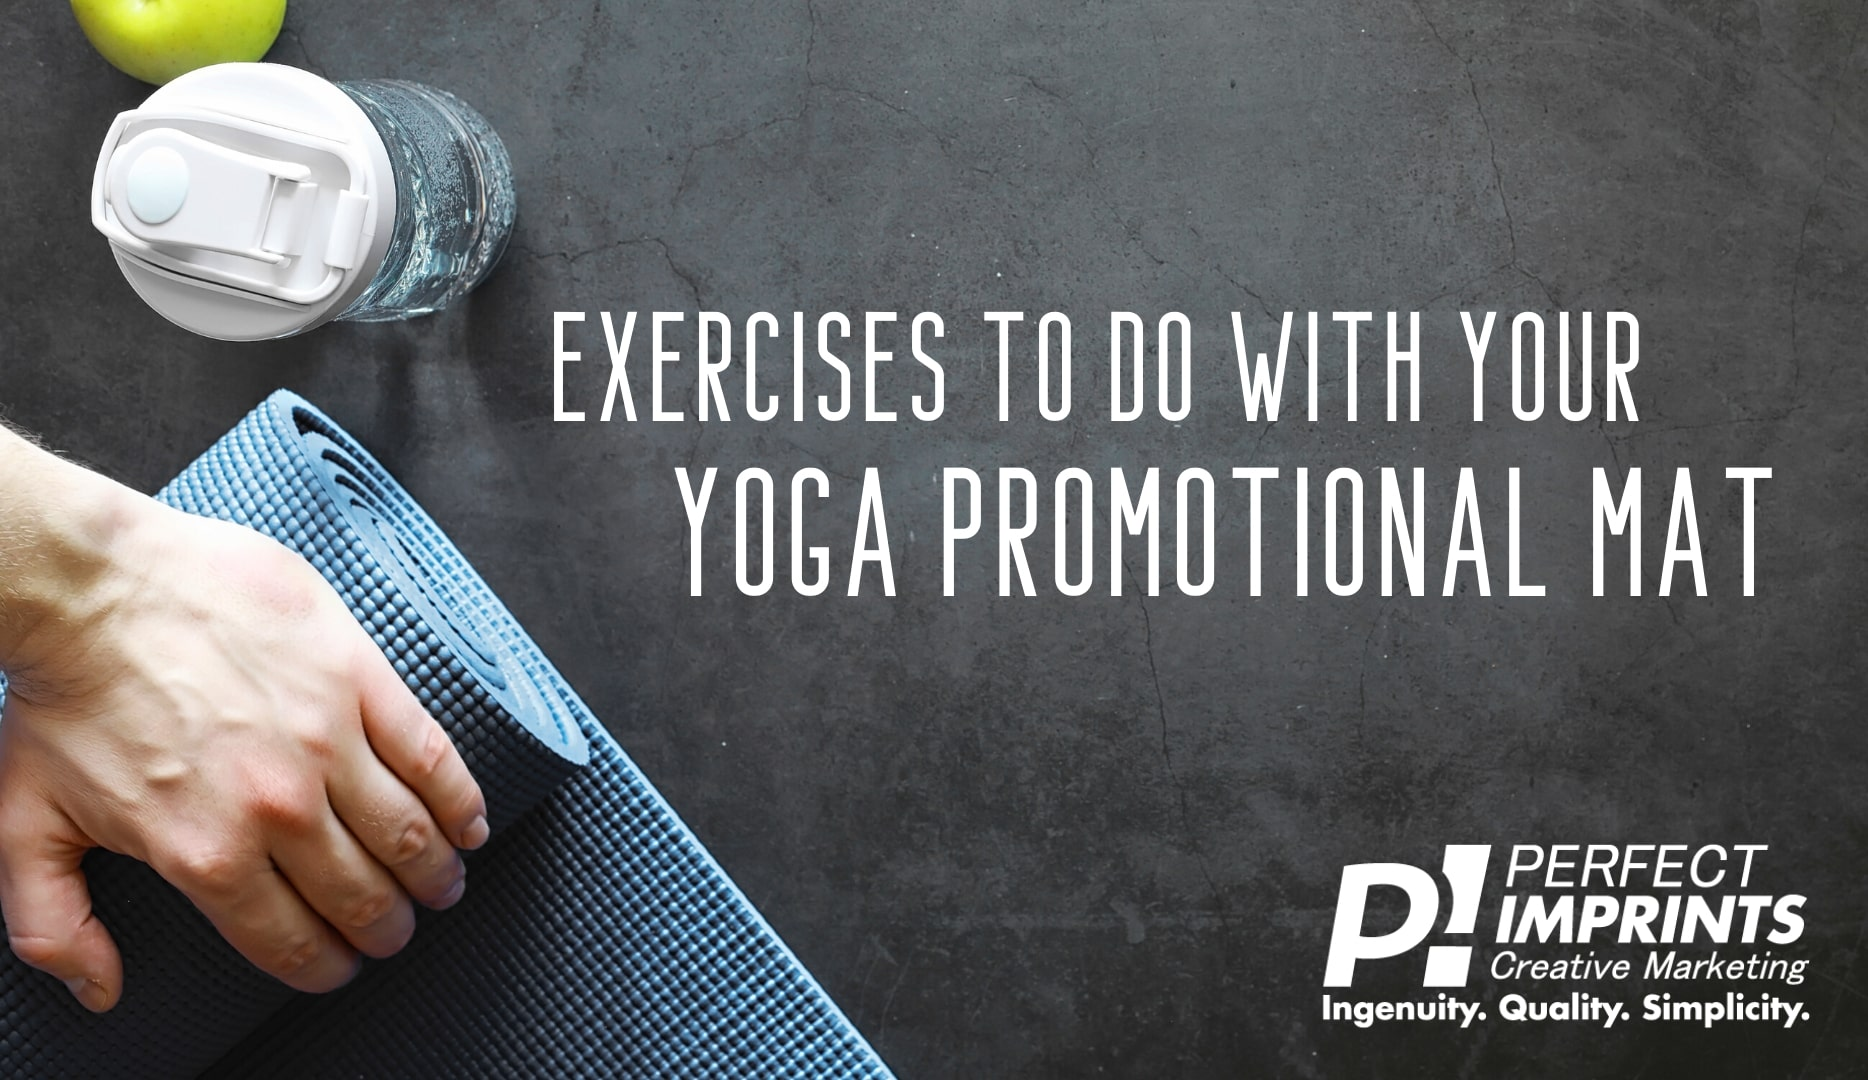 Exercises To Do With Your Yoga Promotional Mats